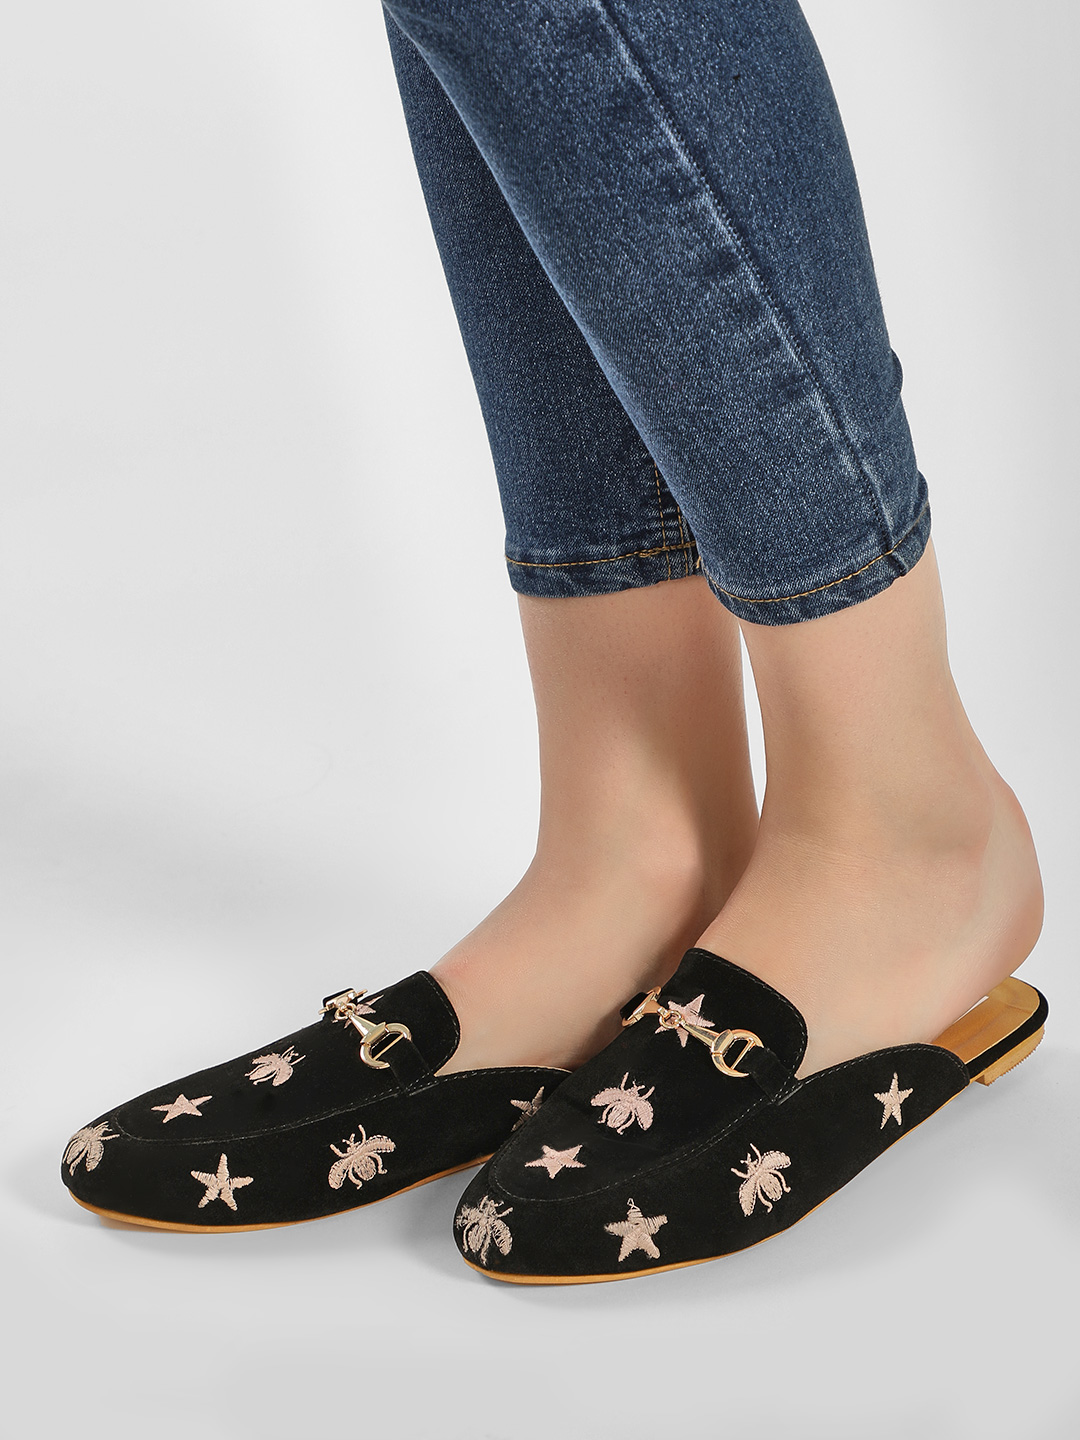 Sole Story Black Embroidered Suede Horsebit Mules 1